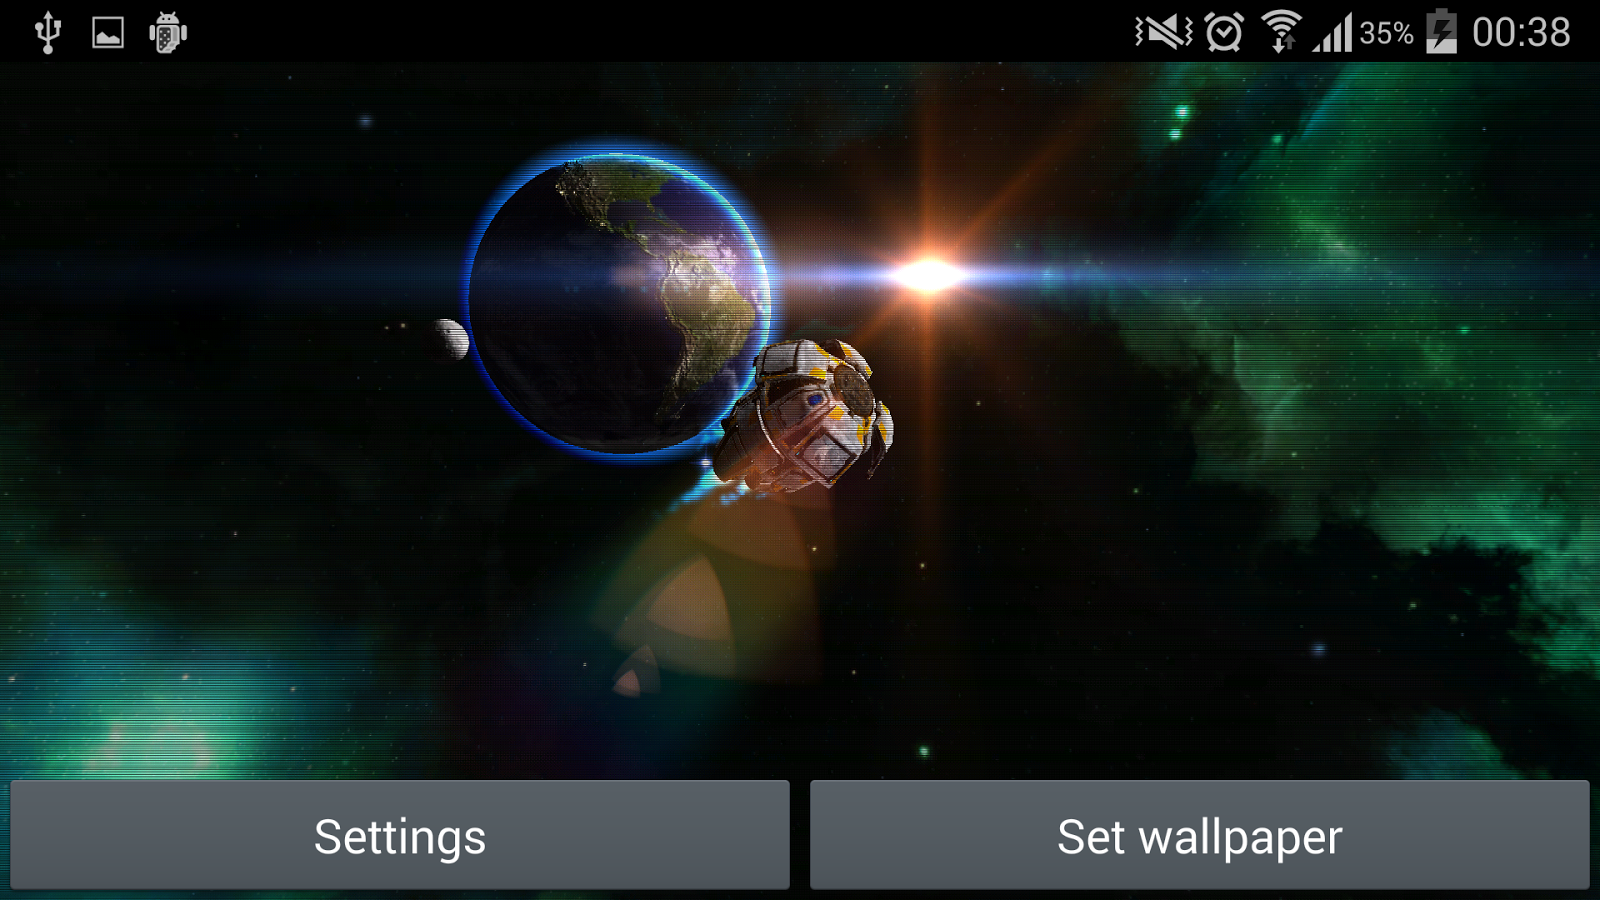 Space explorer 3d lwp free android apps on google play - Space explorer wallpaper ...